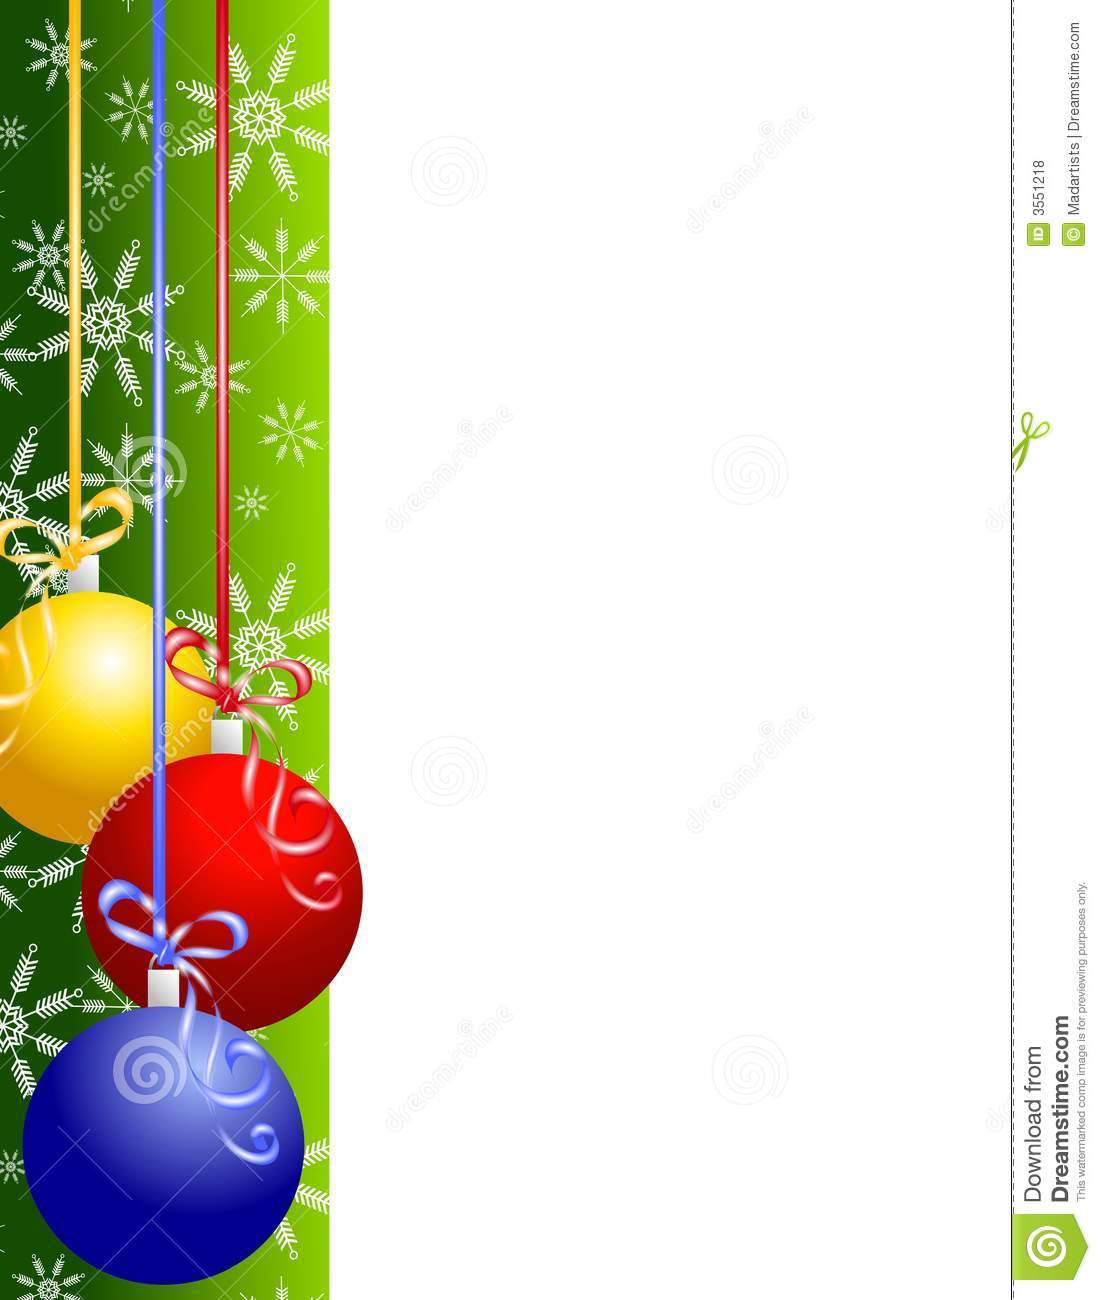 Christmas Border Clipart Free.Disney Christmas Clipart Free At Getdrawings Com Free For